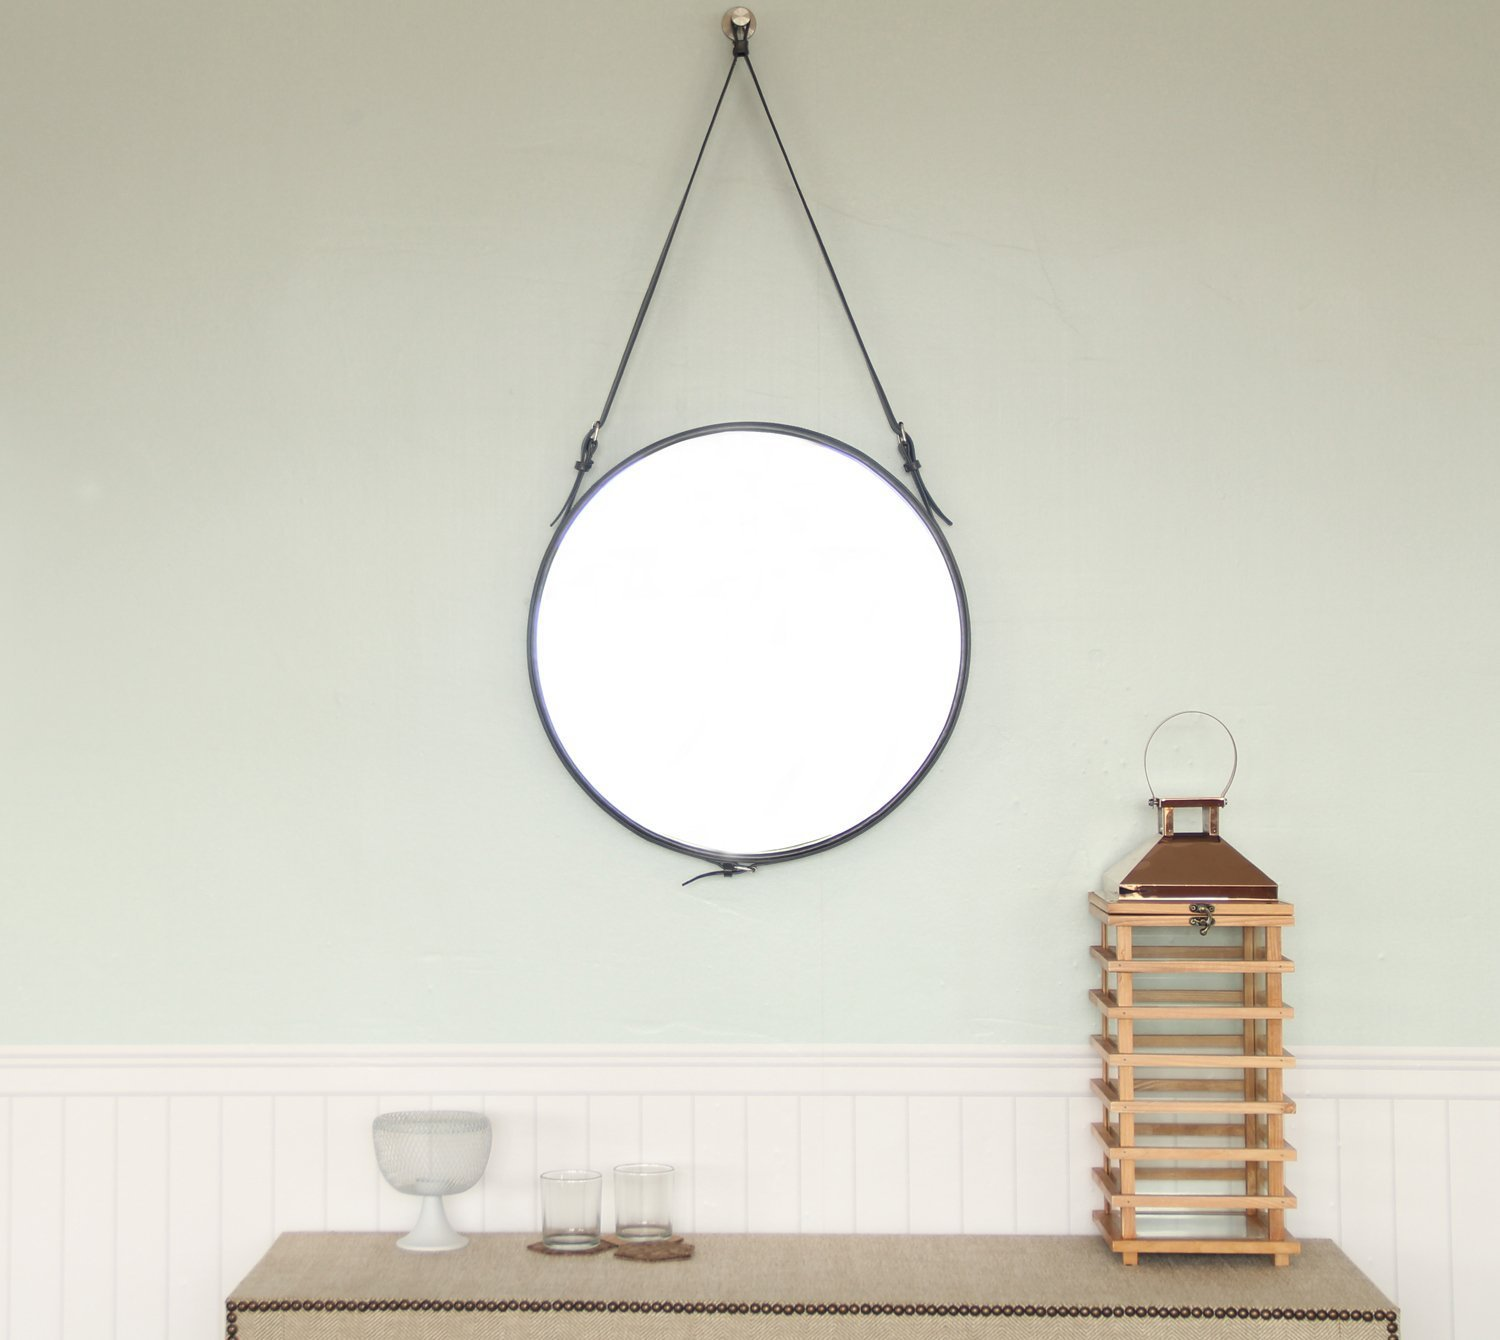 The 5 Best Wall Mirrors In All Shapes And Sizes: 2021 Buying Guide 1